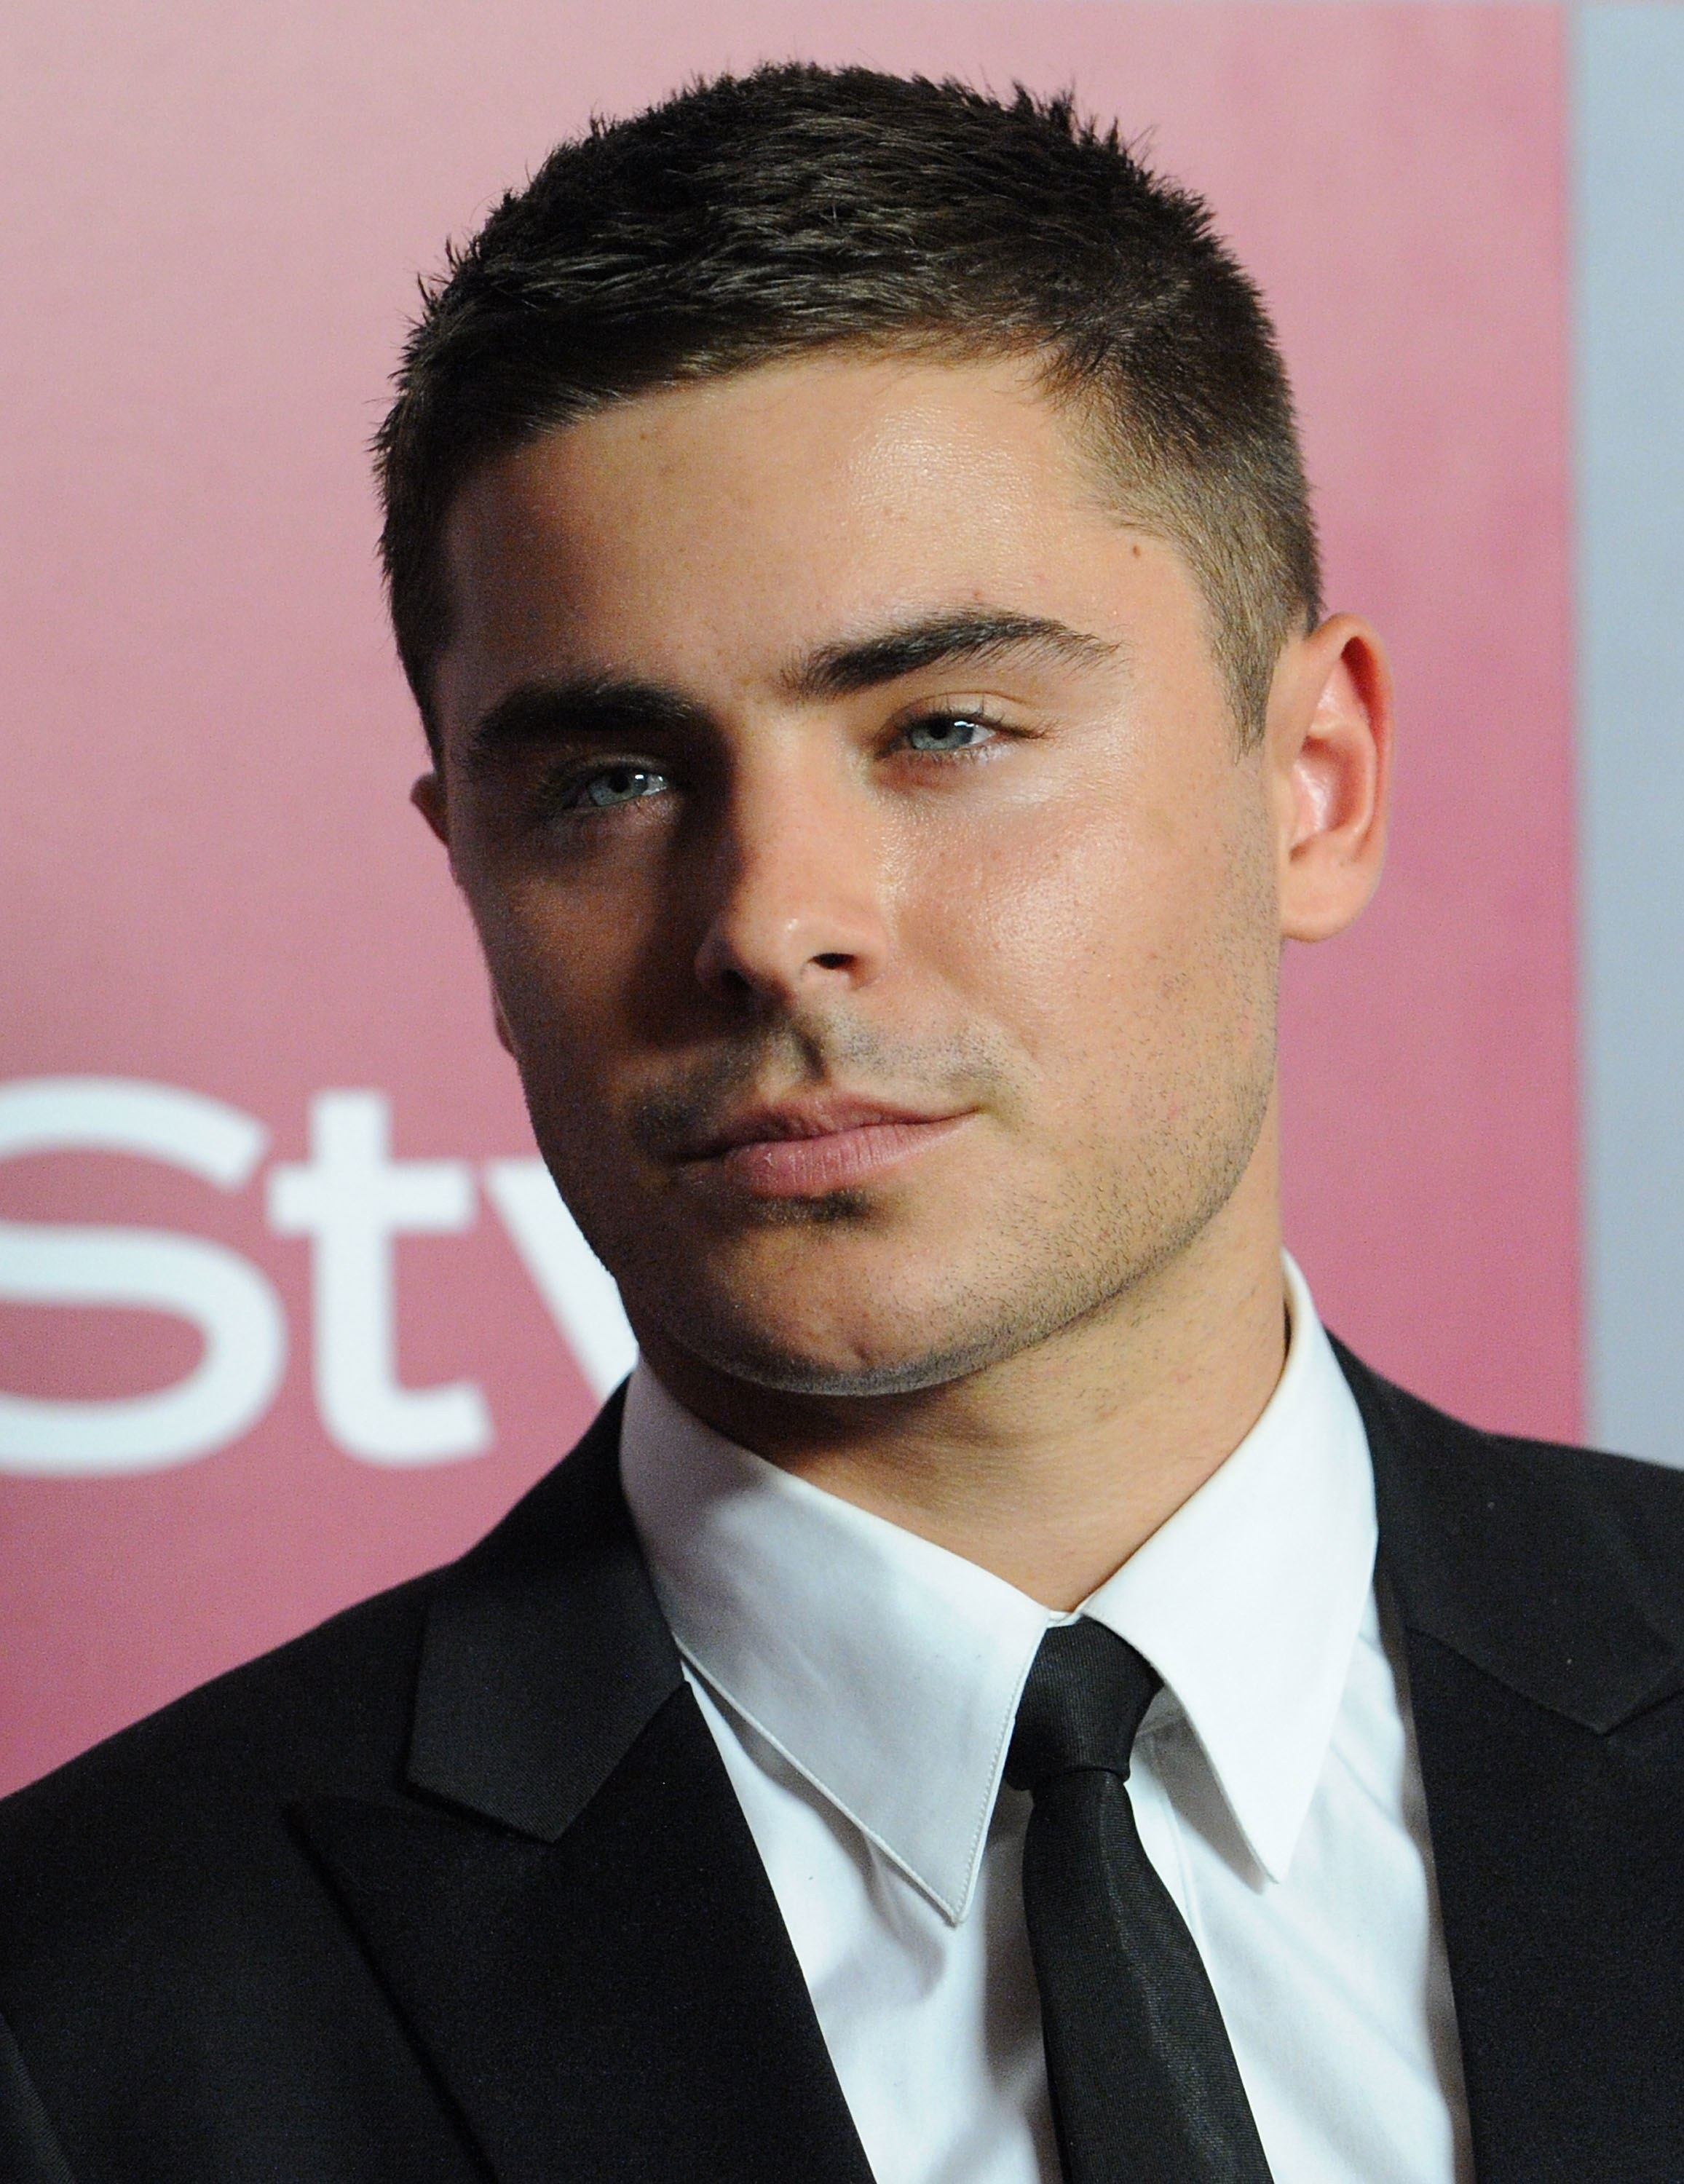 Zac Efron with buzz cut hairstyle